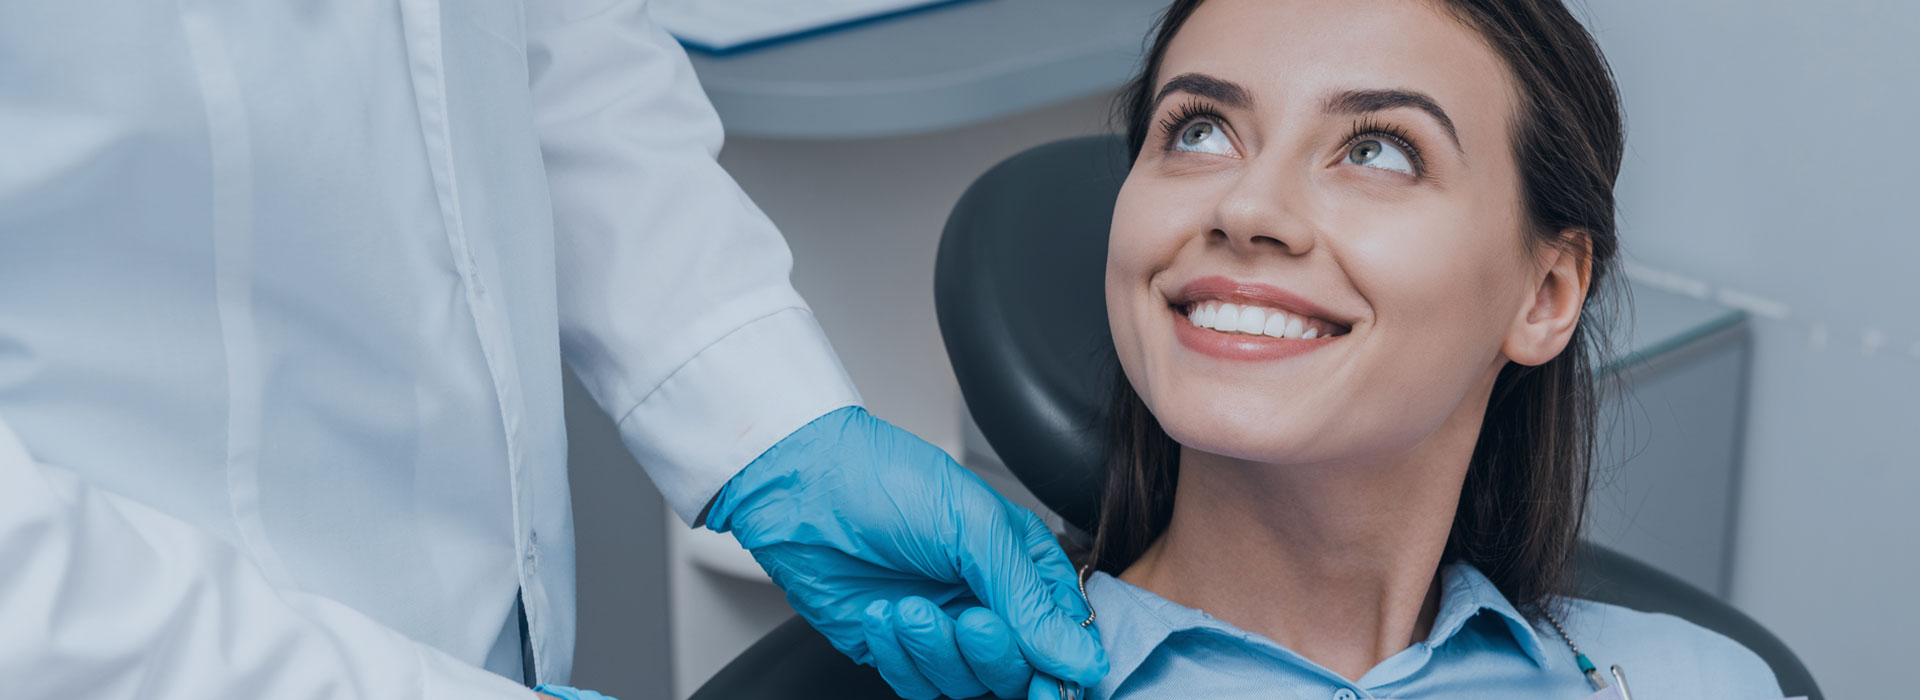 A woman is smiling after dental inlay